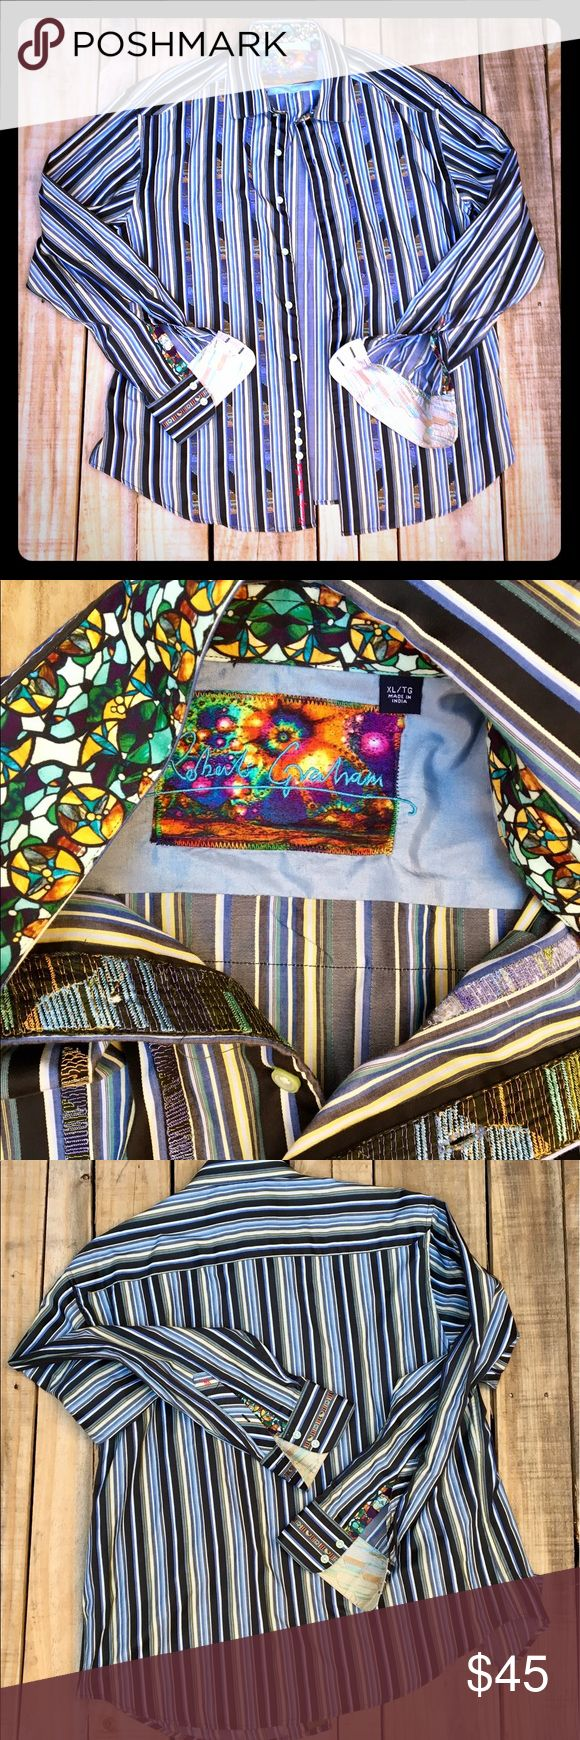 Robert Graham Classic Fit Men's Button Down Shirt Eclectic Artistic Unique Bold Patterns & Rich Colors Collared Button Down Men's Classic Fit Shirt/Dress Shirt by Michael Graham. Contrasting Fabrics Underside & Inside of Collar, Trim on Outside Cuff, Contrast Fabric Underside of Cuff & Inside Vertically of the Button Seams. Almost New!!! Robert Graham Shirts Dress Shirts